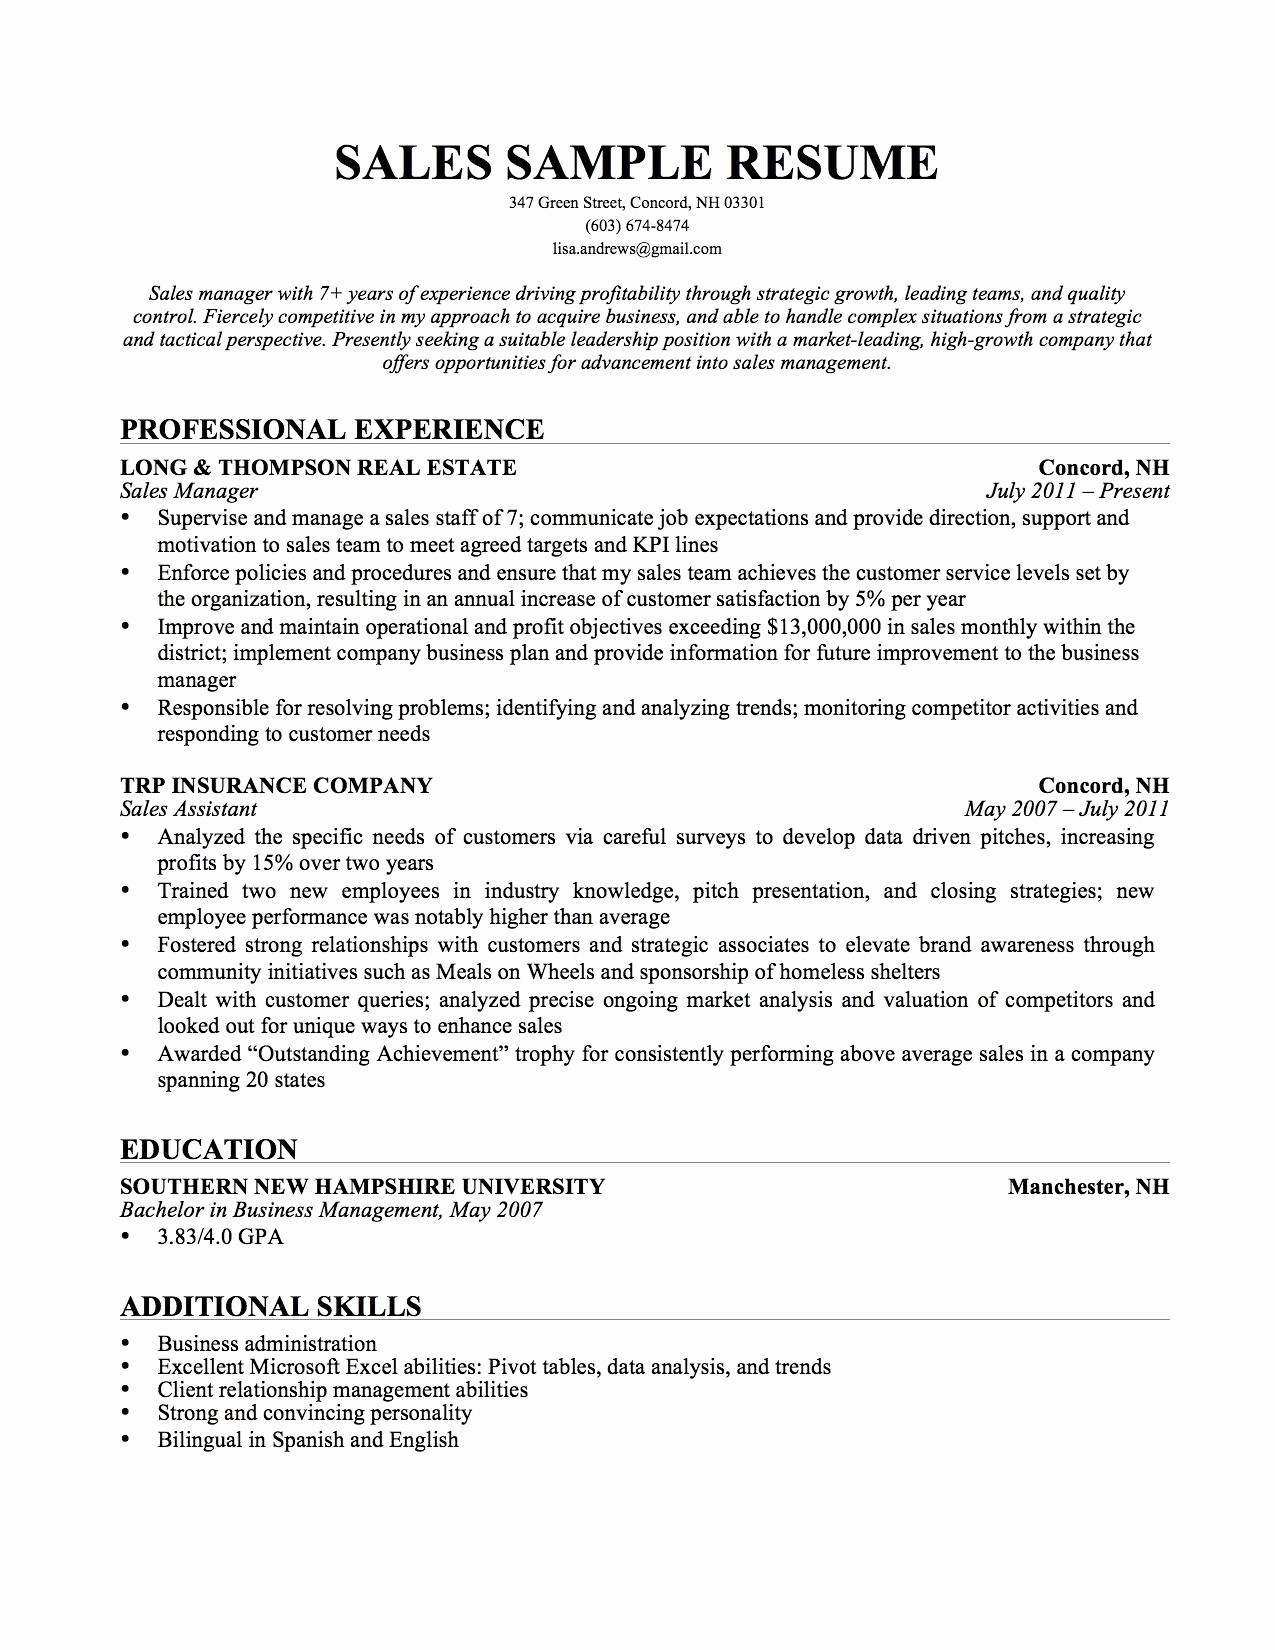 Chemist Resume Template - Resume format Examples Inspirational Free Resume Creator Beautiful